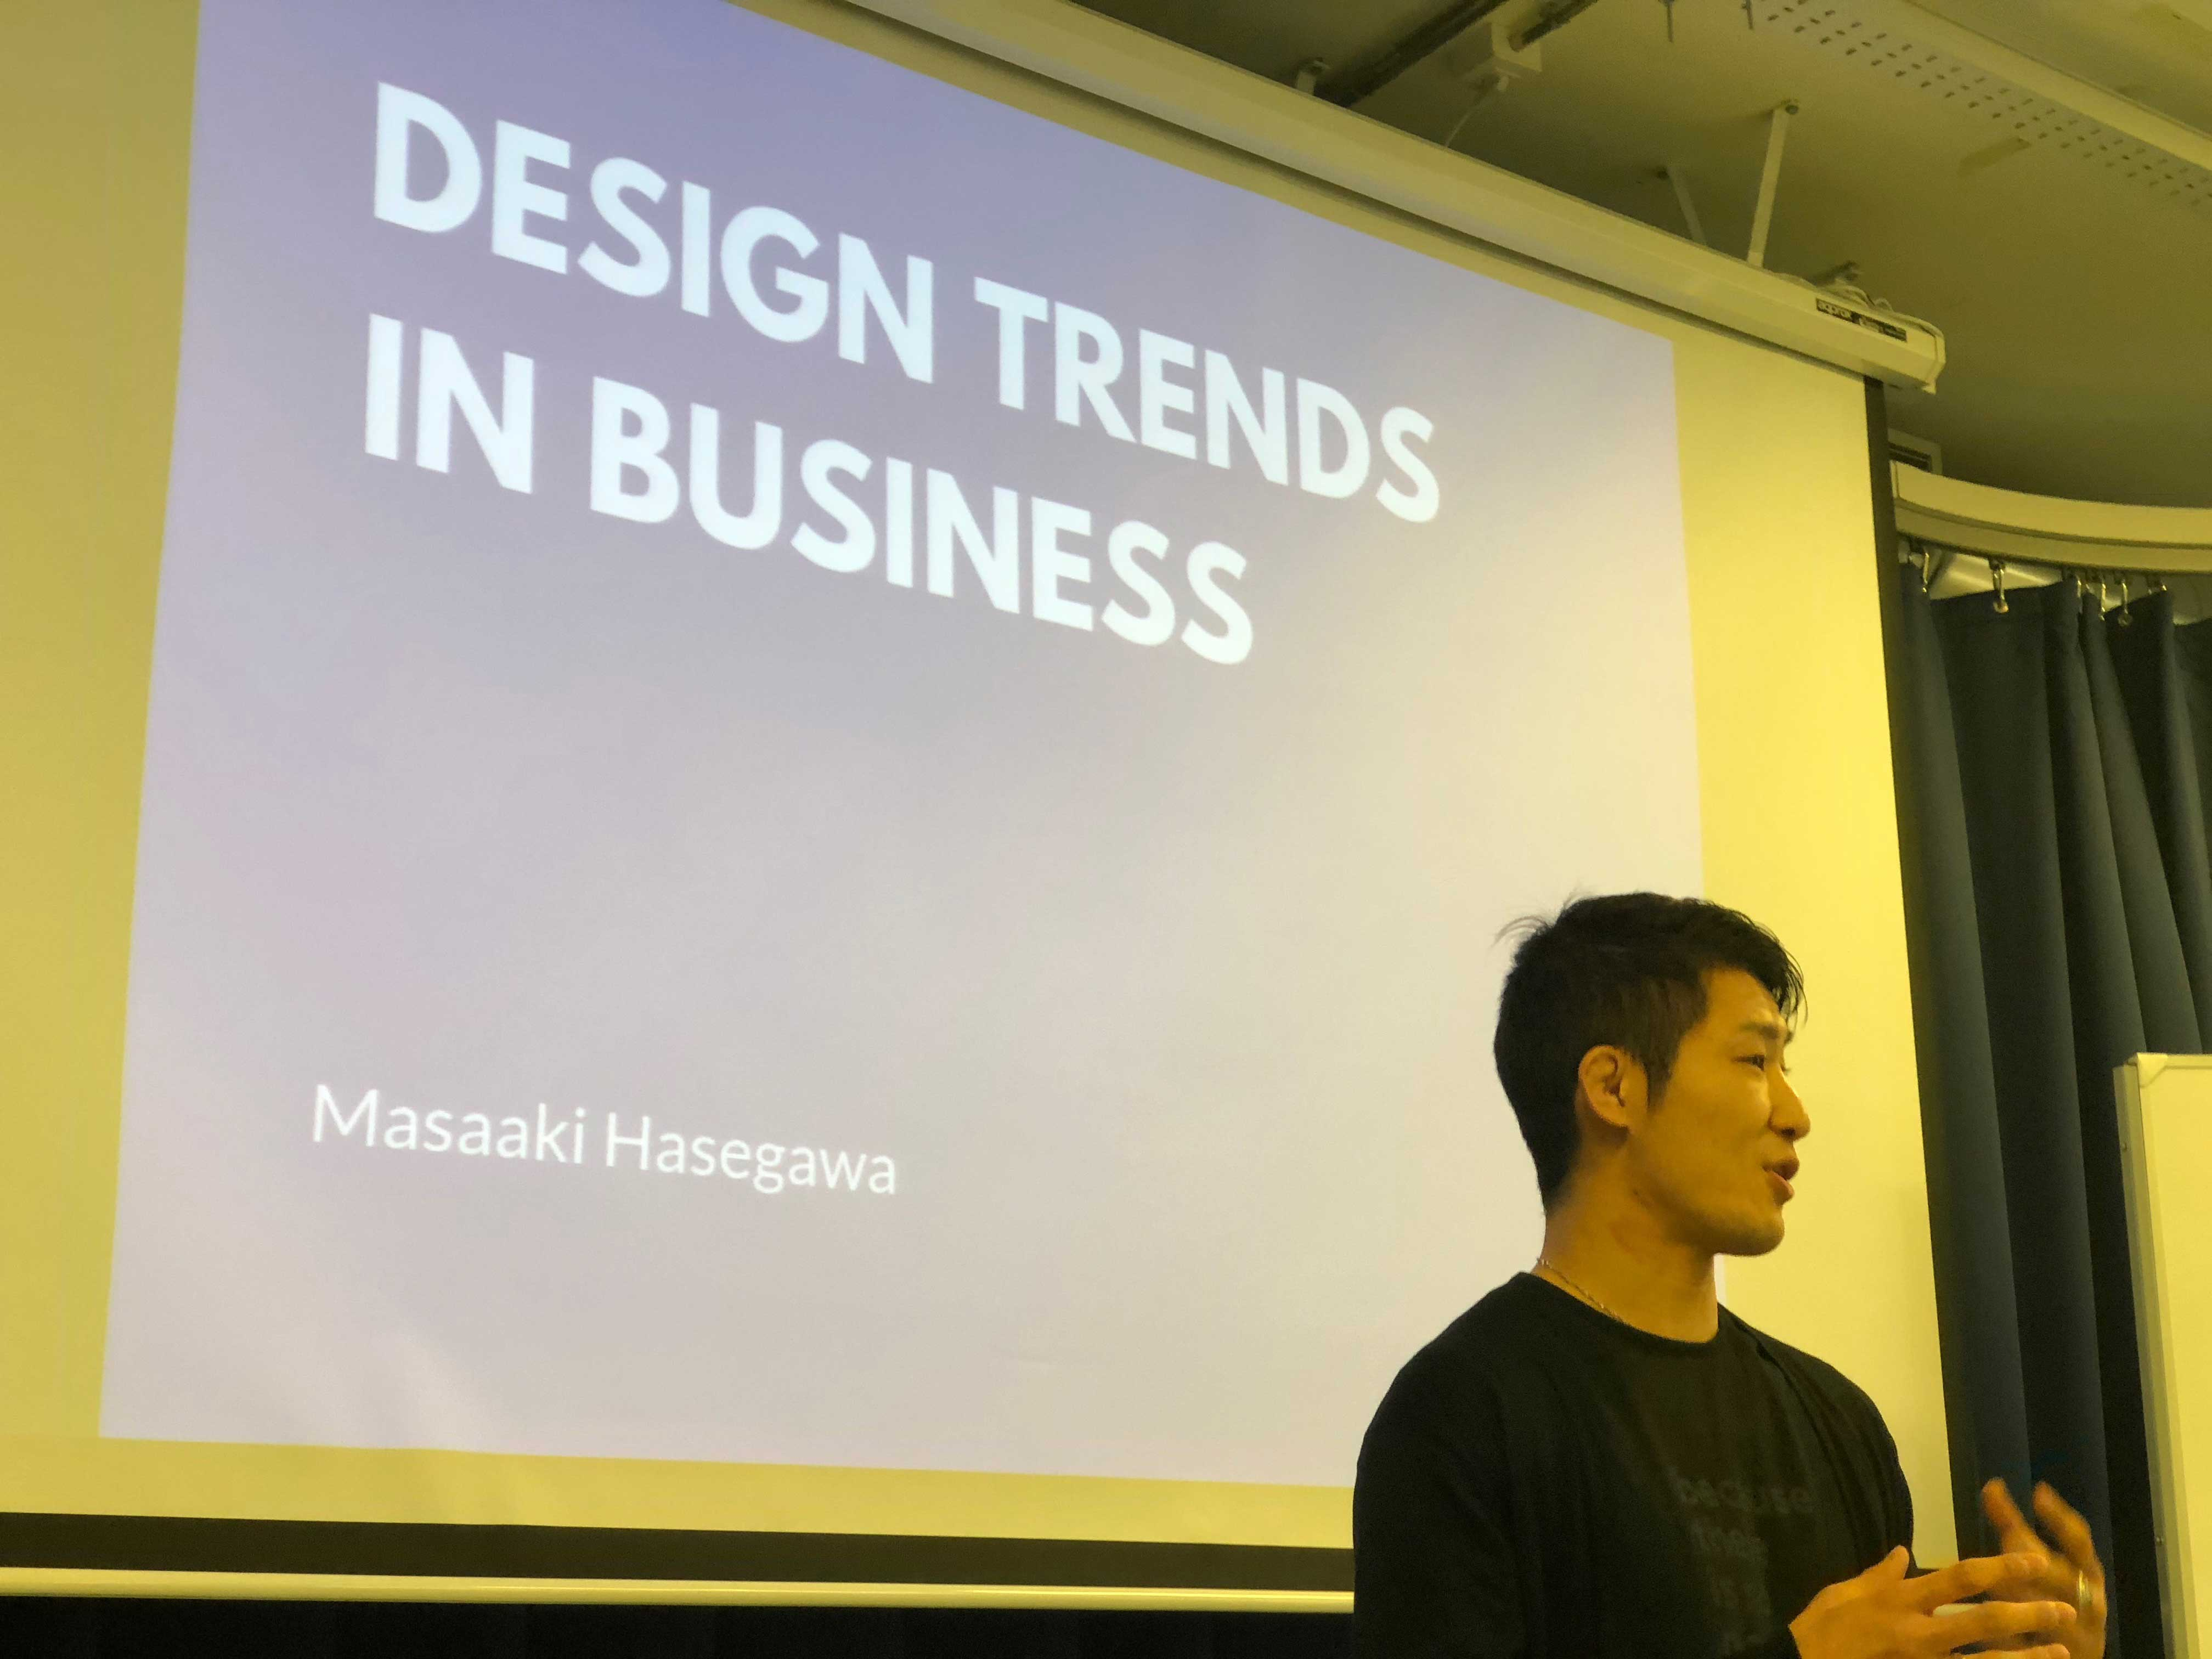 Design Trends in Bussines with Masaaki Hasegawa